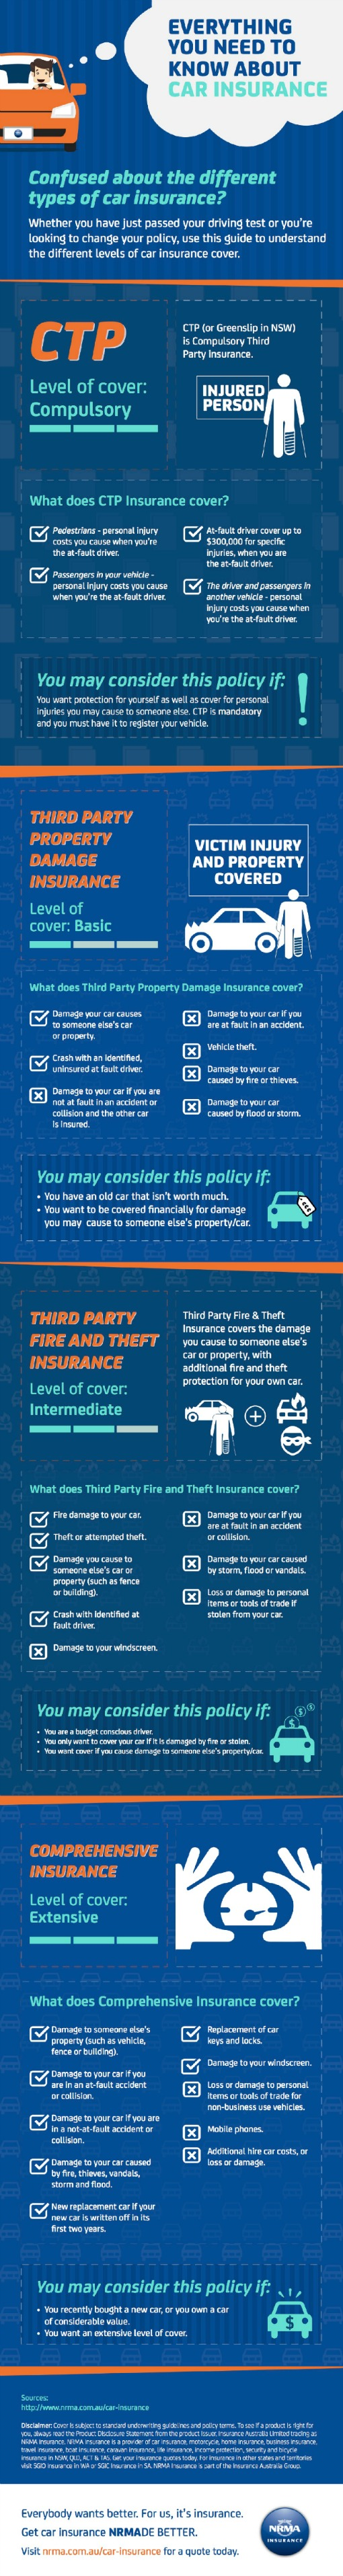 Infographic: Guide Car Insurance NRMA